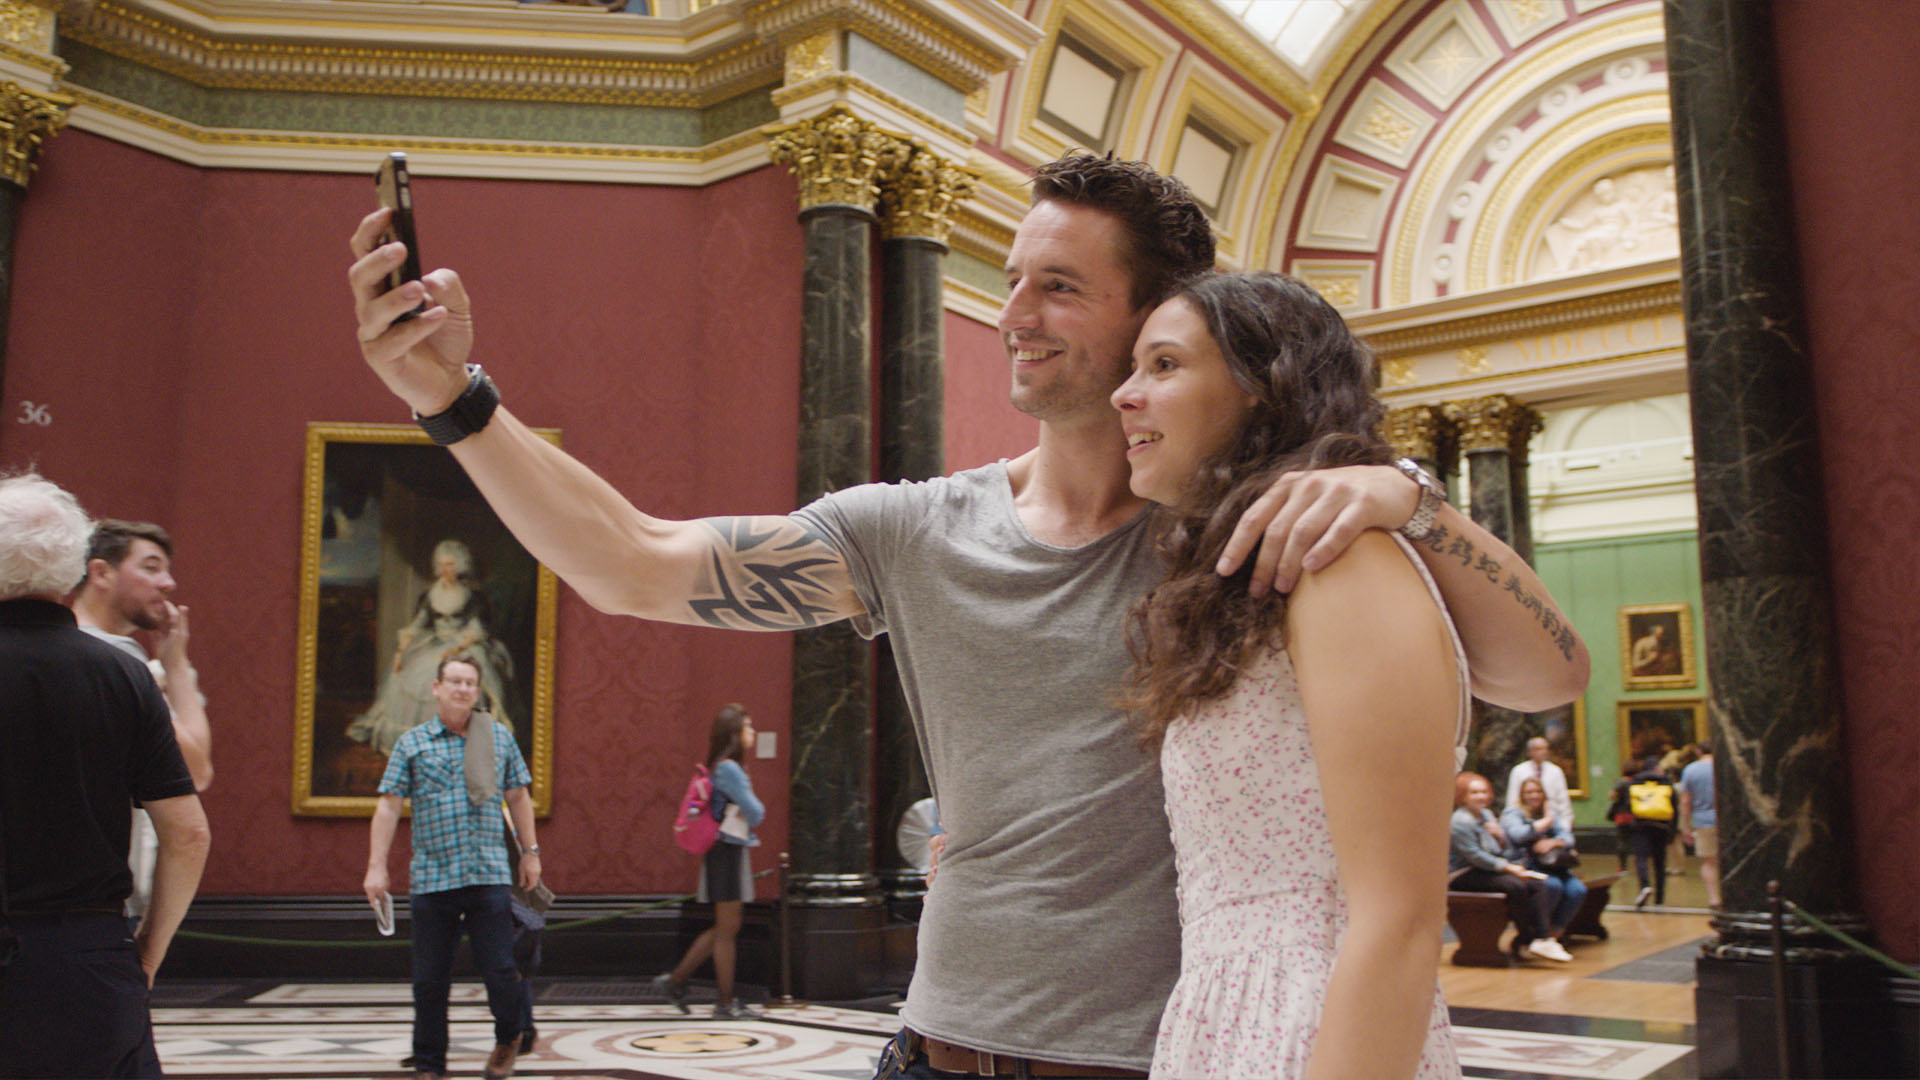 National Gallery Couple Selfie London for Free